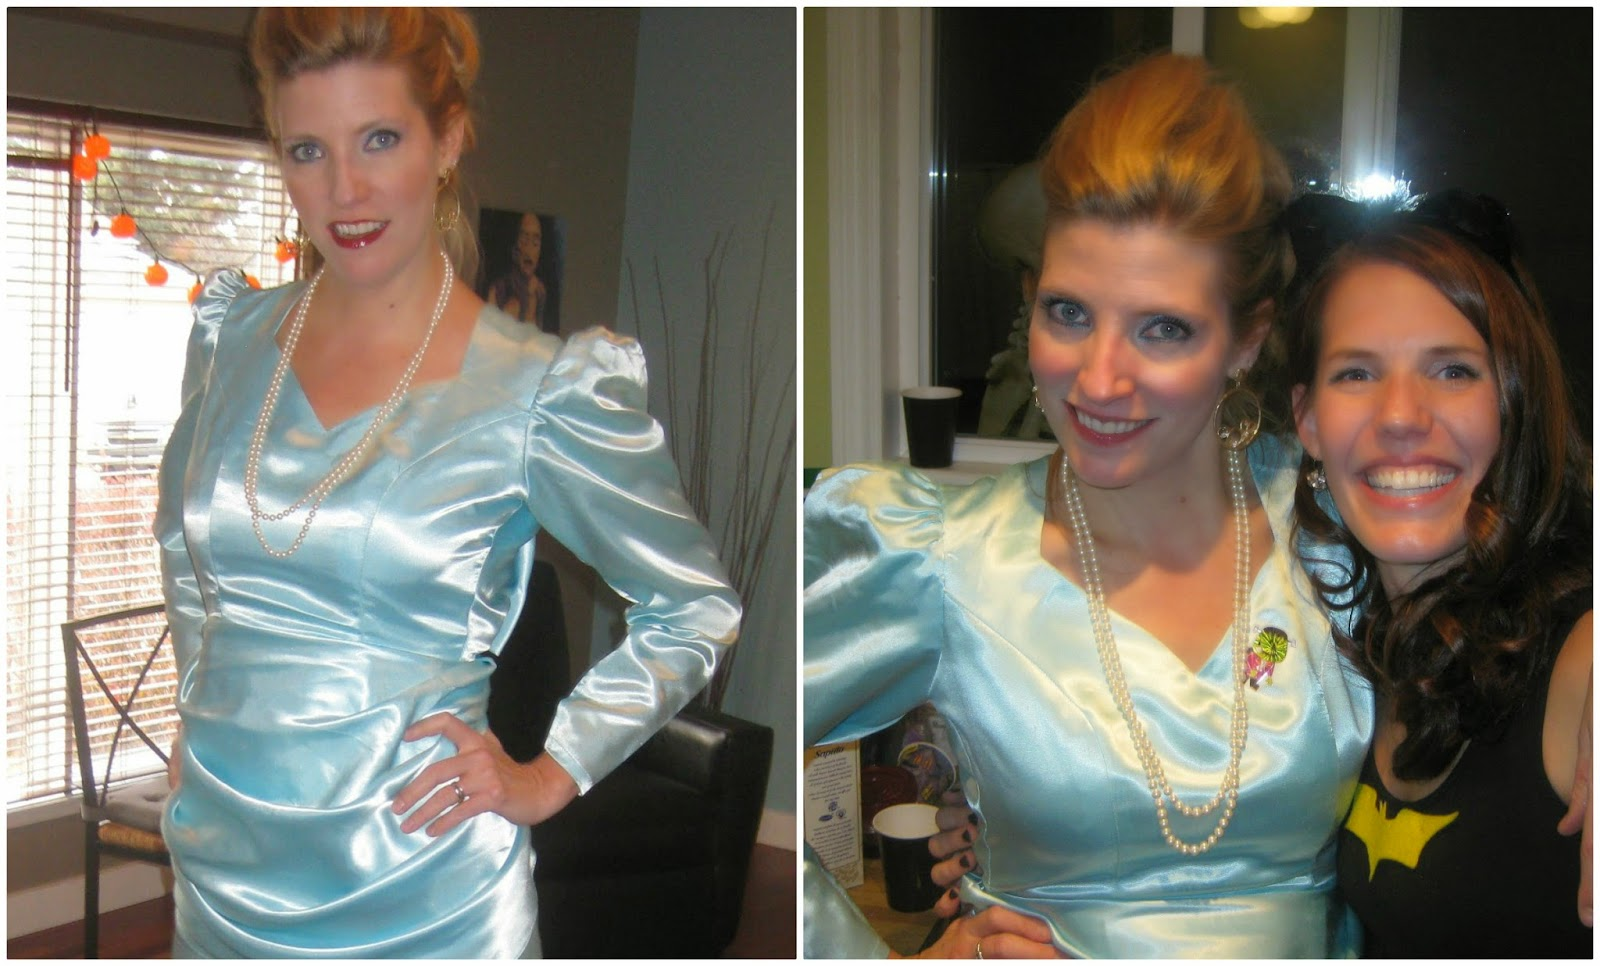 http://vvboutiquestyle.blogspot.ca/2012/10/big-hair-bad-roots-and-blue-satin-my.html